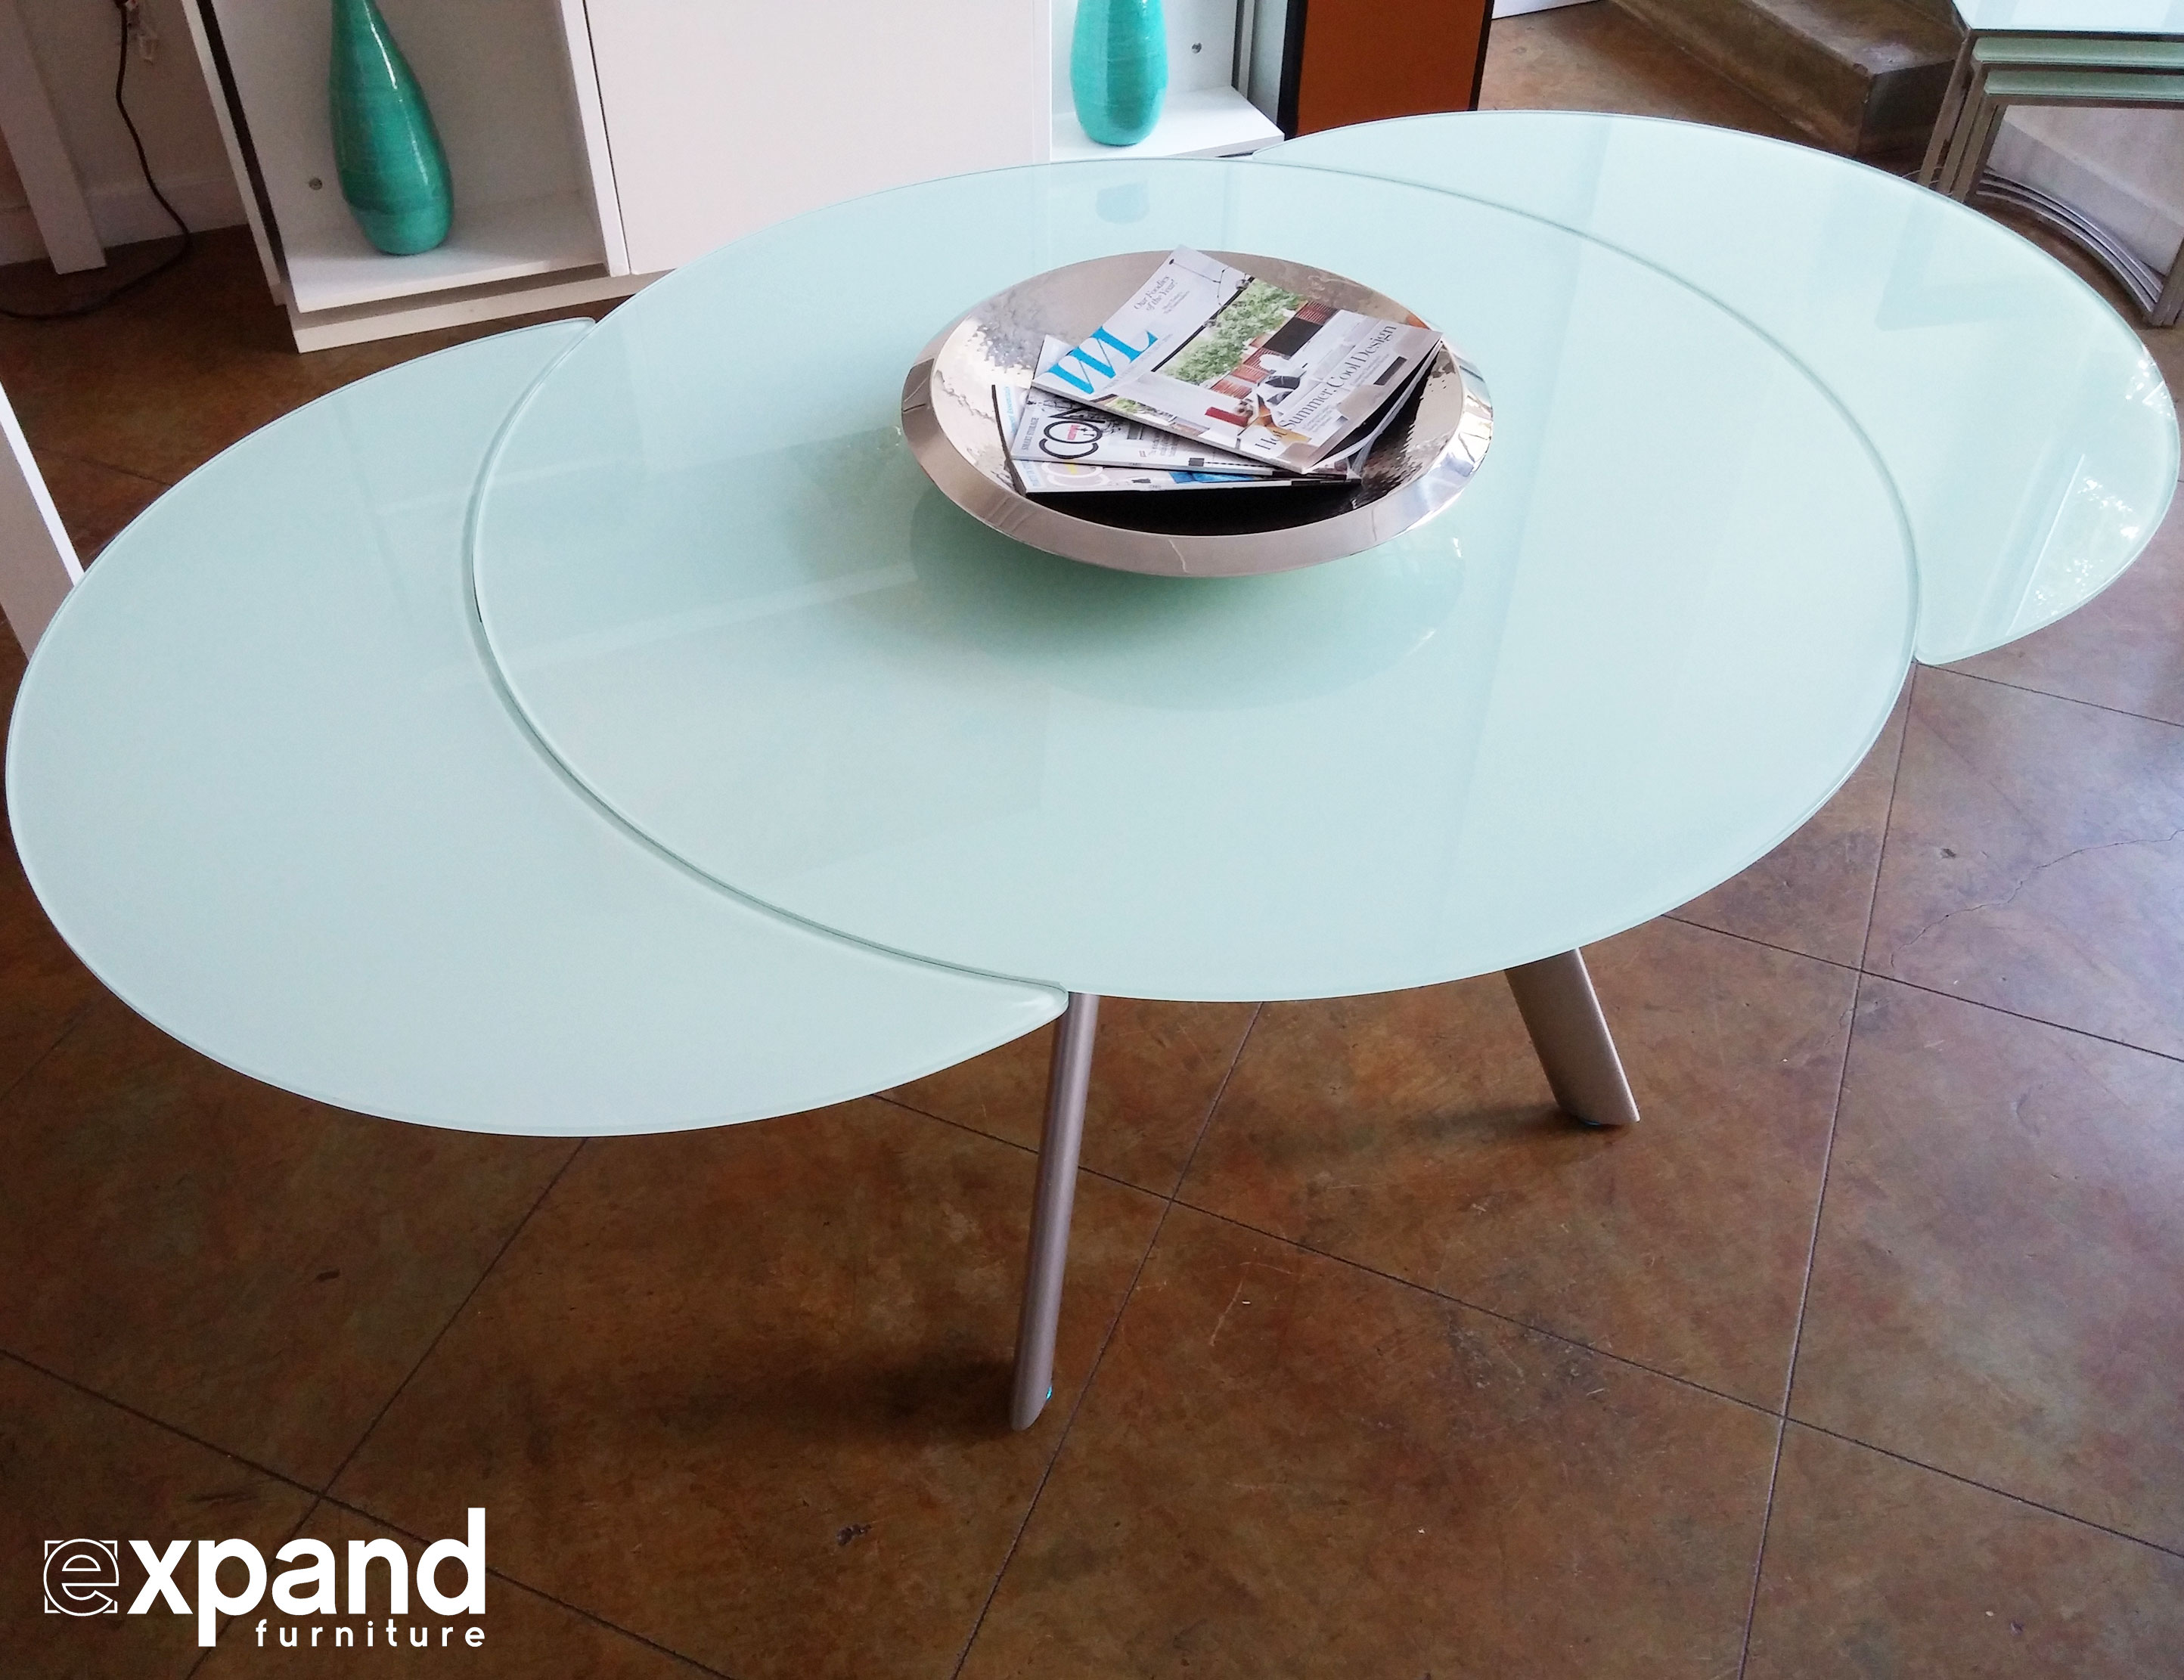 The Butterfly Expandable Round Glass Dining Table Expand  : Butterfly round glass expanded table in white glass from expandfurniture.com size 2888 x 2222 jpeg 664kB